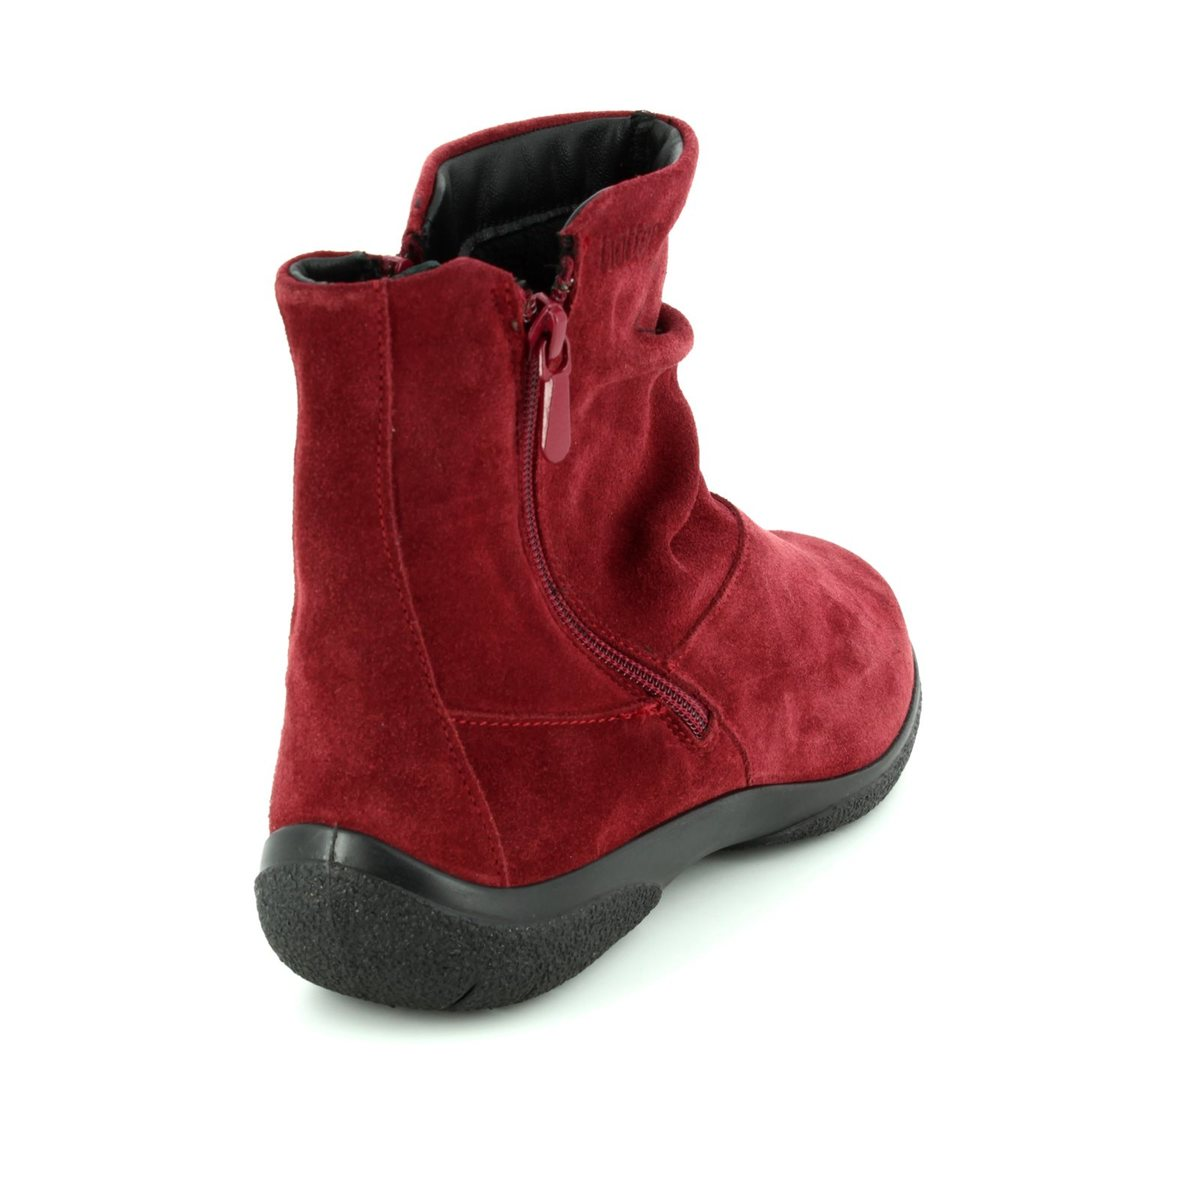 Hotter Shoes Womens Sale